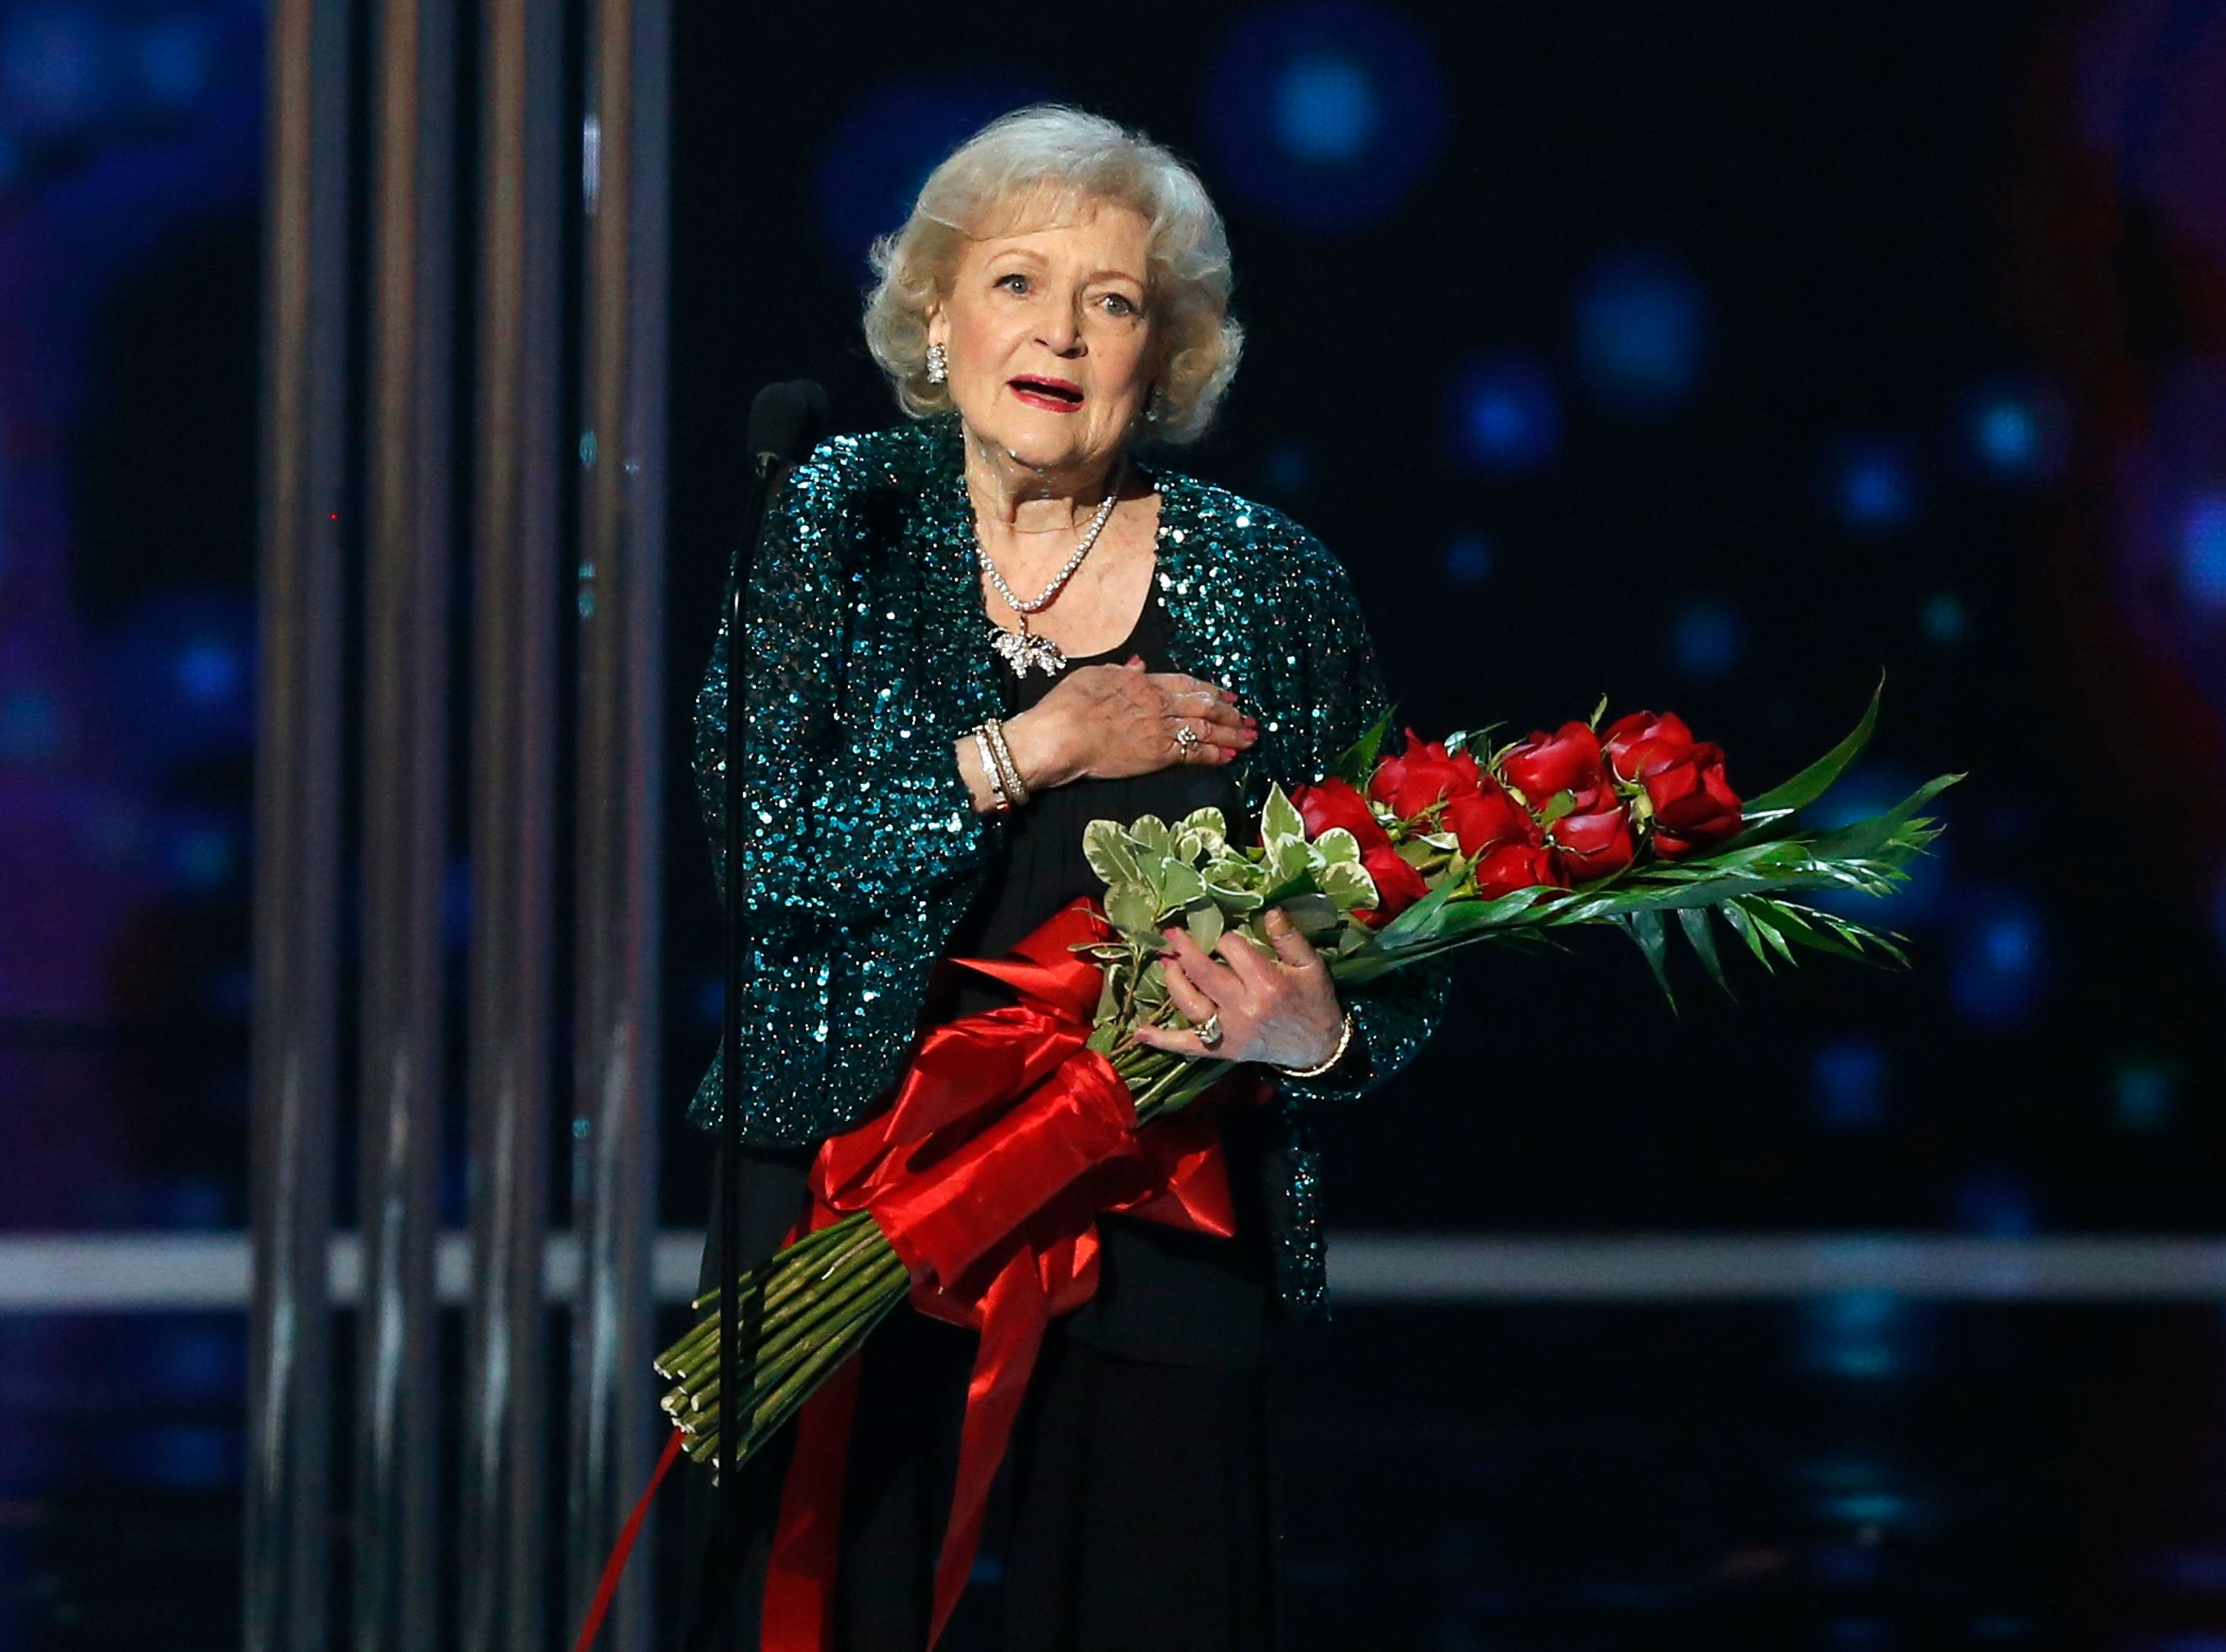 Actress Betty White accepts the favorite TV Icon award during the 2015 People's Choice Awards in Los Angeles, California January 7, 2015.   REUTERS/Mario Anzuoni (UNITED STATES  - Tags: ENTERTAINMENT)    (PEOPLESCHOICE-SHOW)